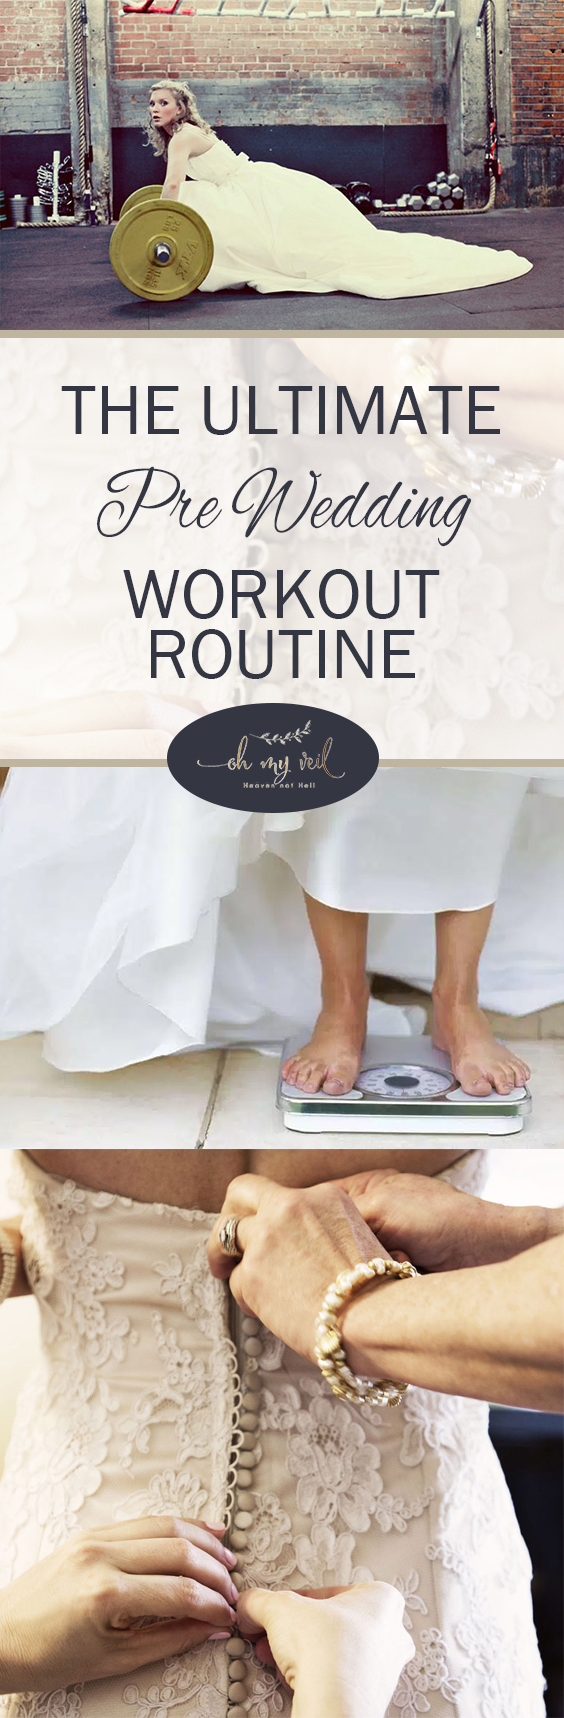 Wedding Workouts, Wedding Workout Routine, Wedding Workout Tips, Wedding Workout Plan, Workout Tips, Workout Tips and Tricks, Popular